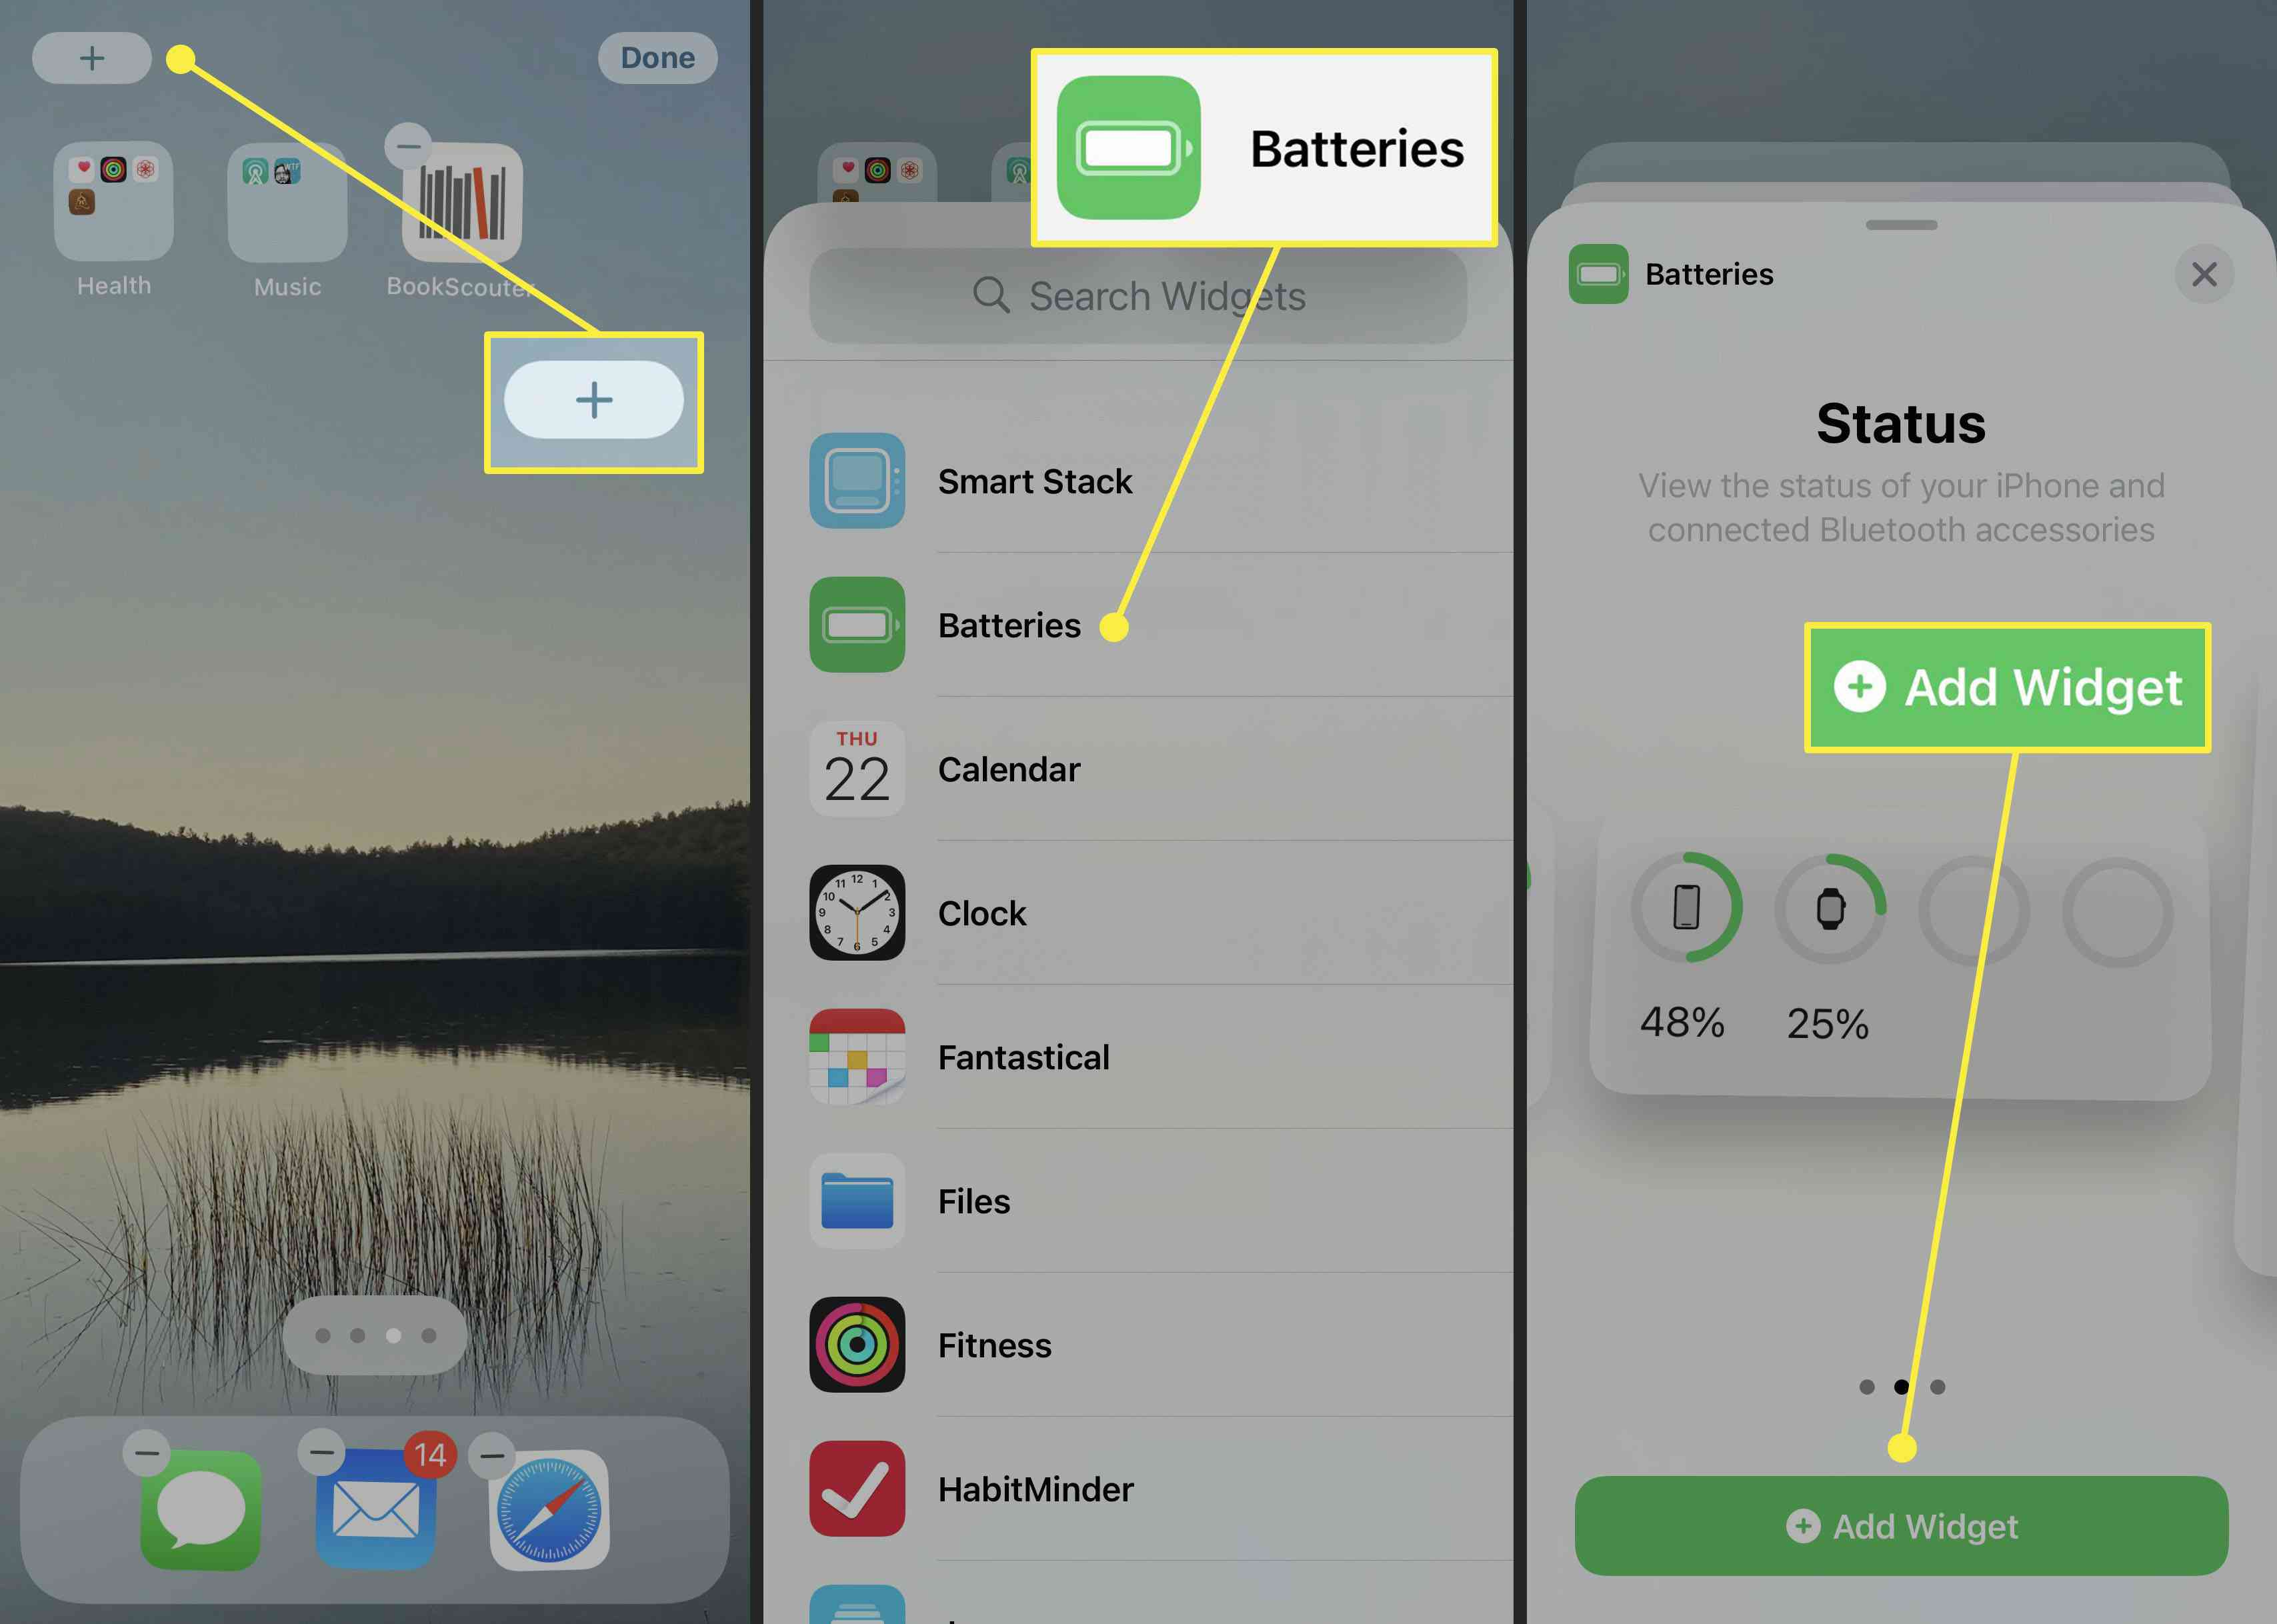 How to add the battery widget on the iPhone running iOS 14.